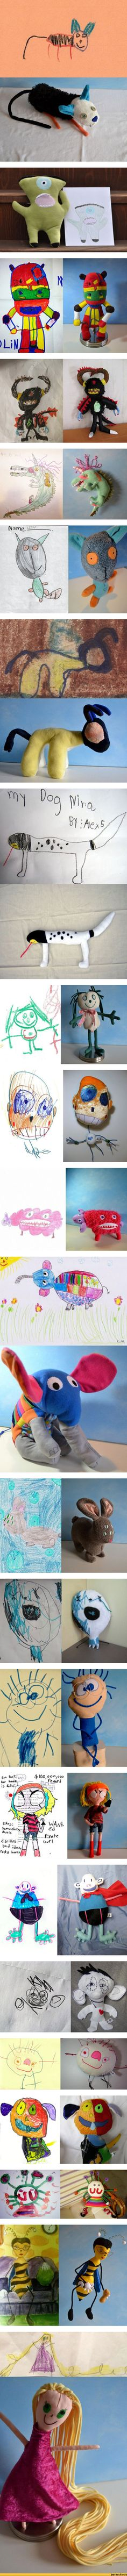 If toys were actually made like they are drawn by kiddies!